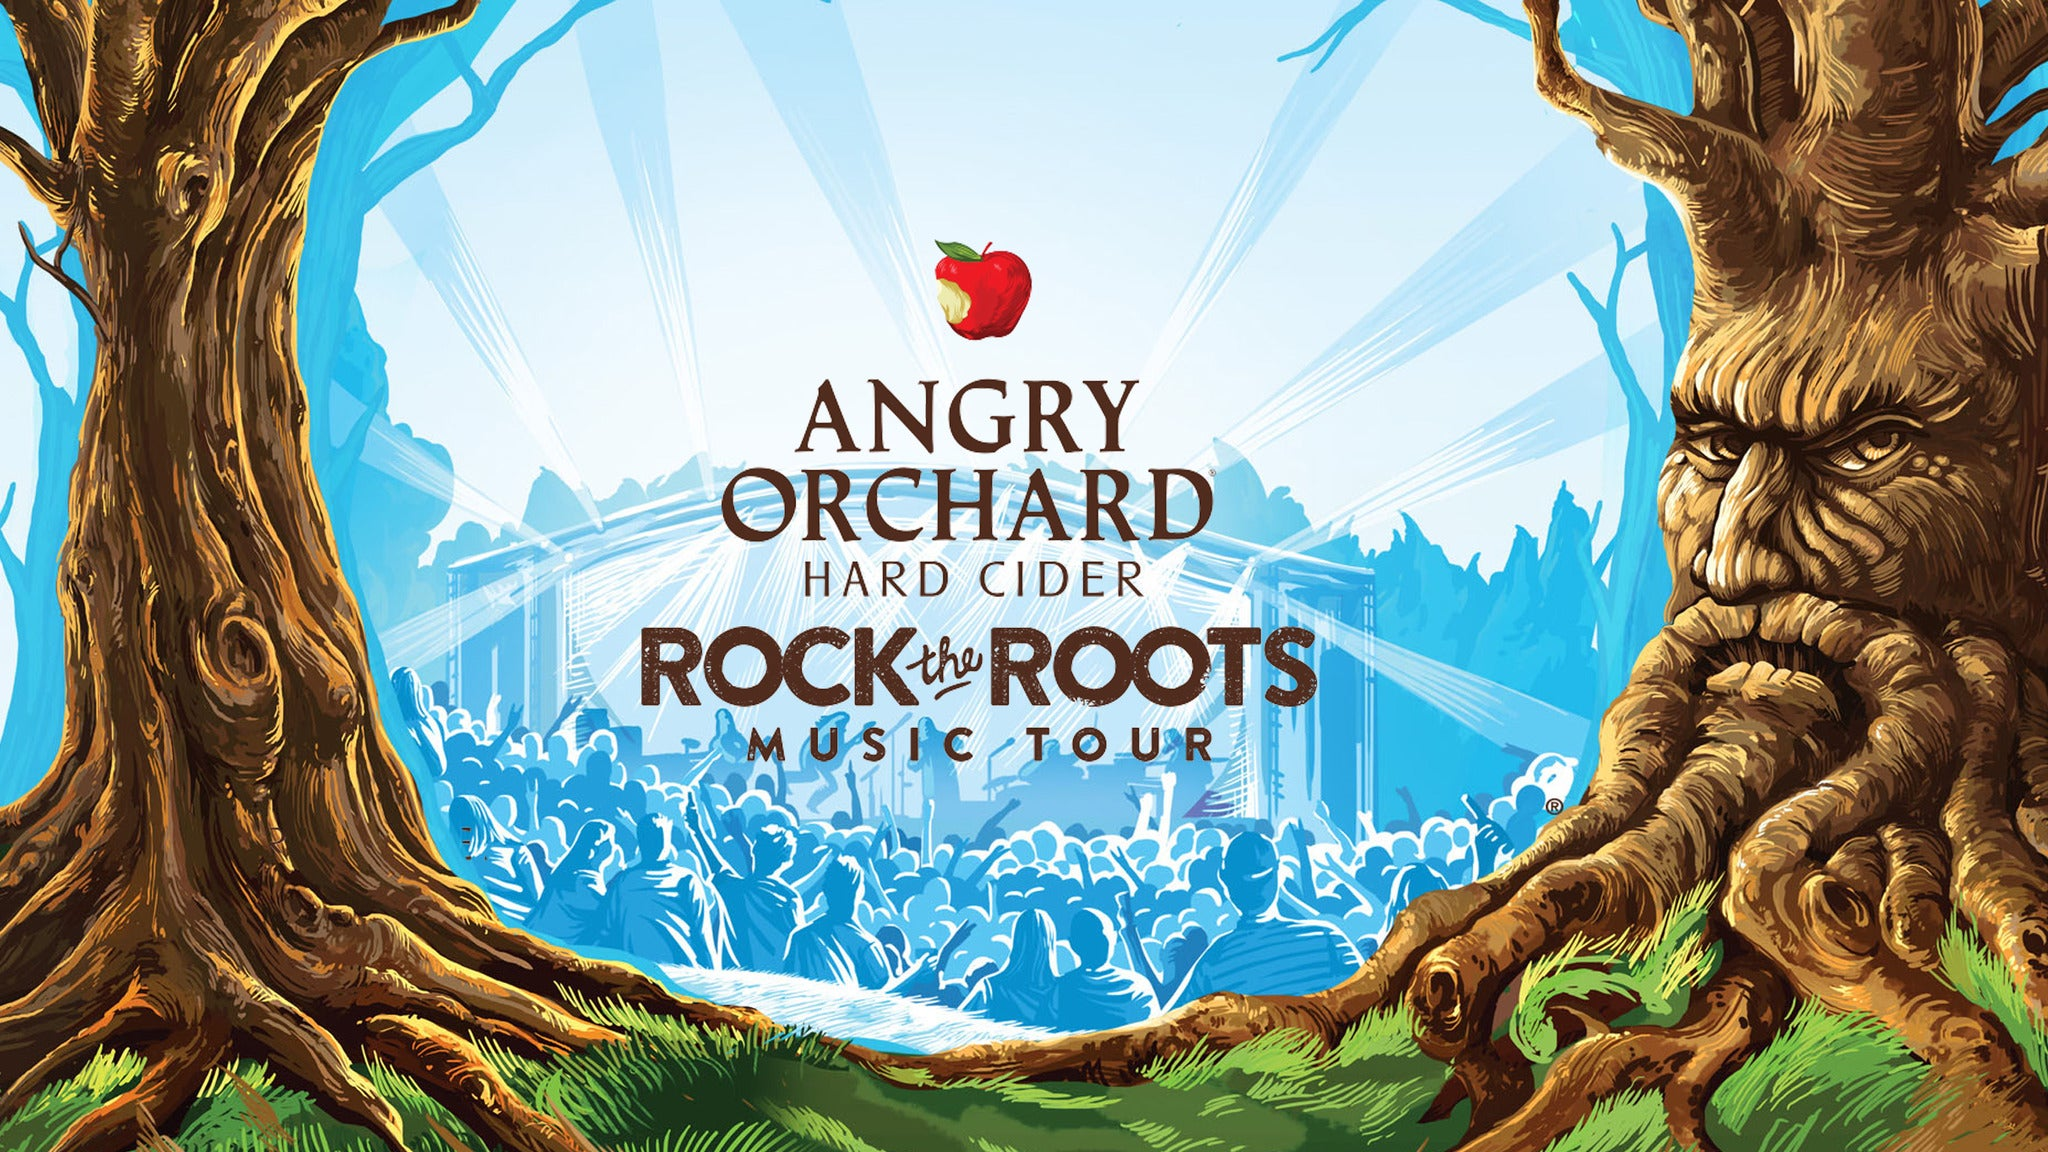 Angry Orchard Rock The Roots: Orlando, FL